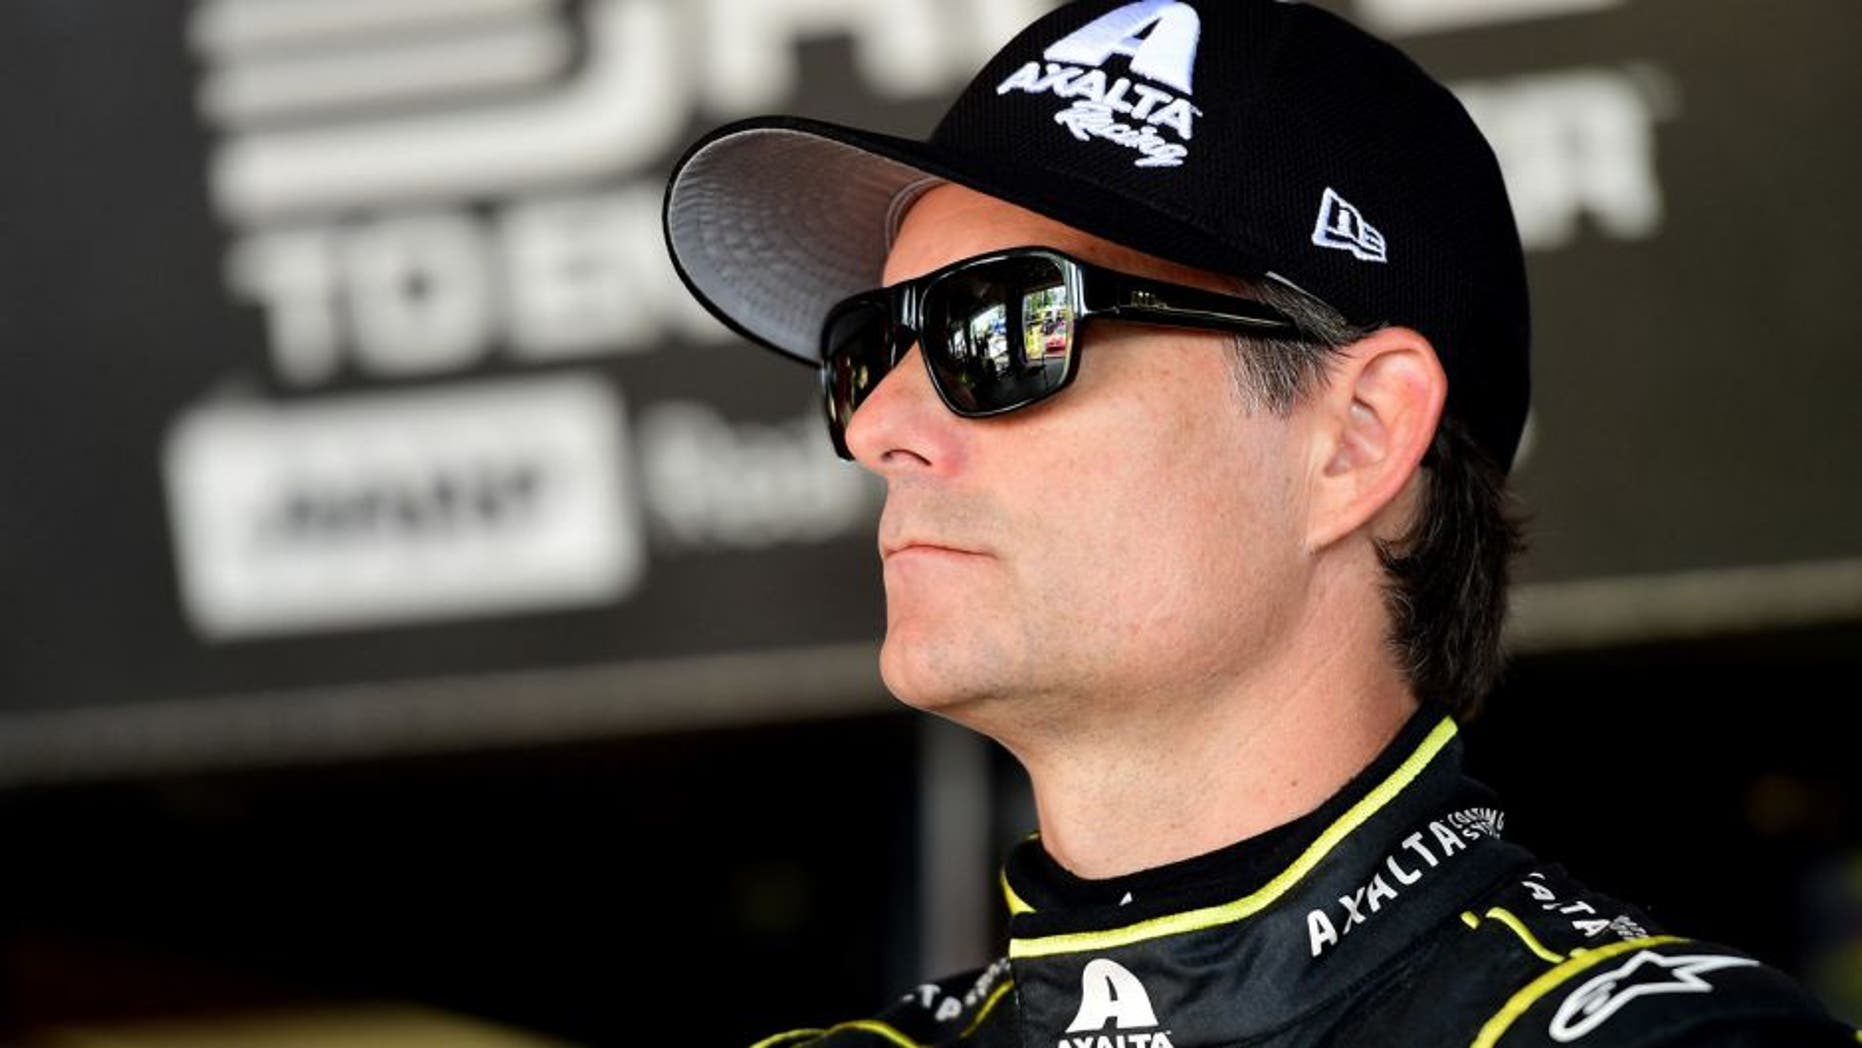 WATKINS GLEN, NY - AUGUST 07: Jeff Gordon, driver of the #24 Axalta Chevrolet, stands in the garage area during practice for the NASCAR Sprint Cup Series Cheez-It 355 at Watkins Glen International on August 7, 2015 in Watkins Glen, New York. (Photo by Jared C. Tilton/NASCAR via Getty Images)